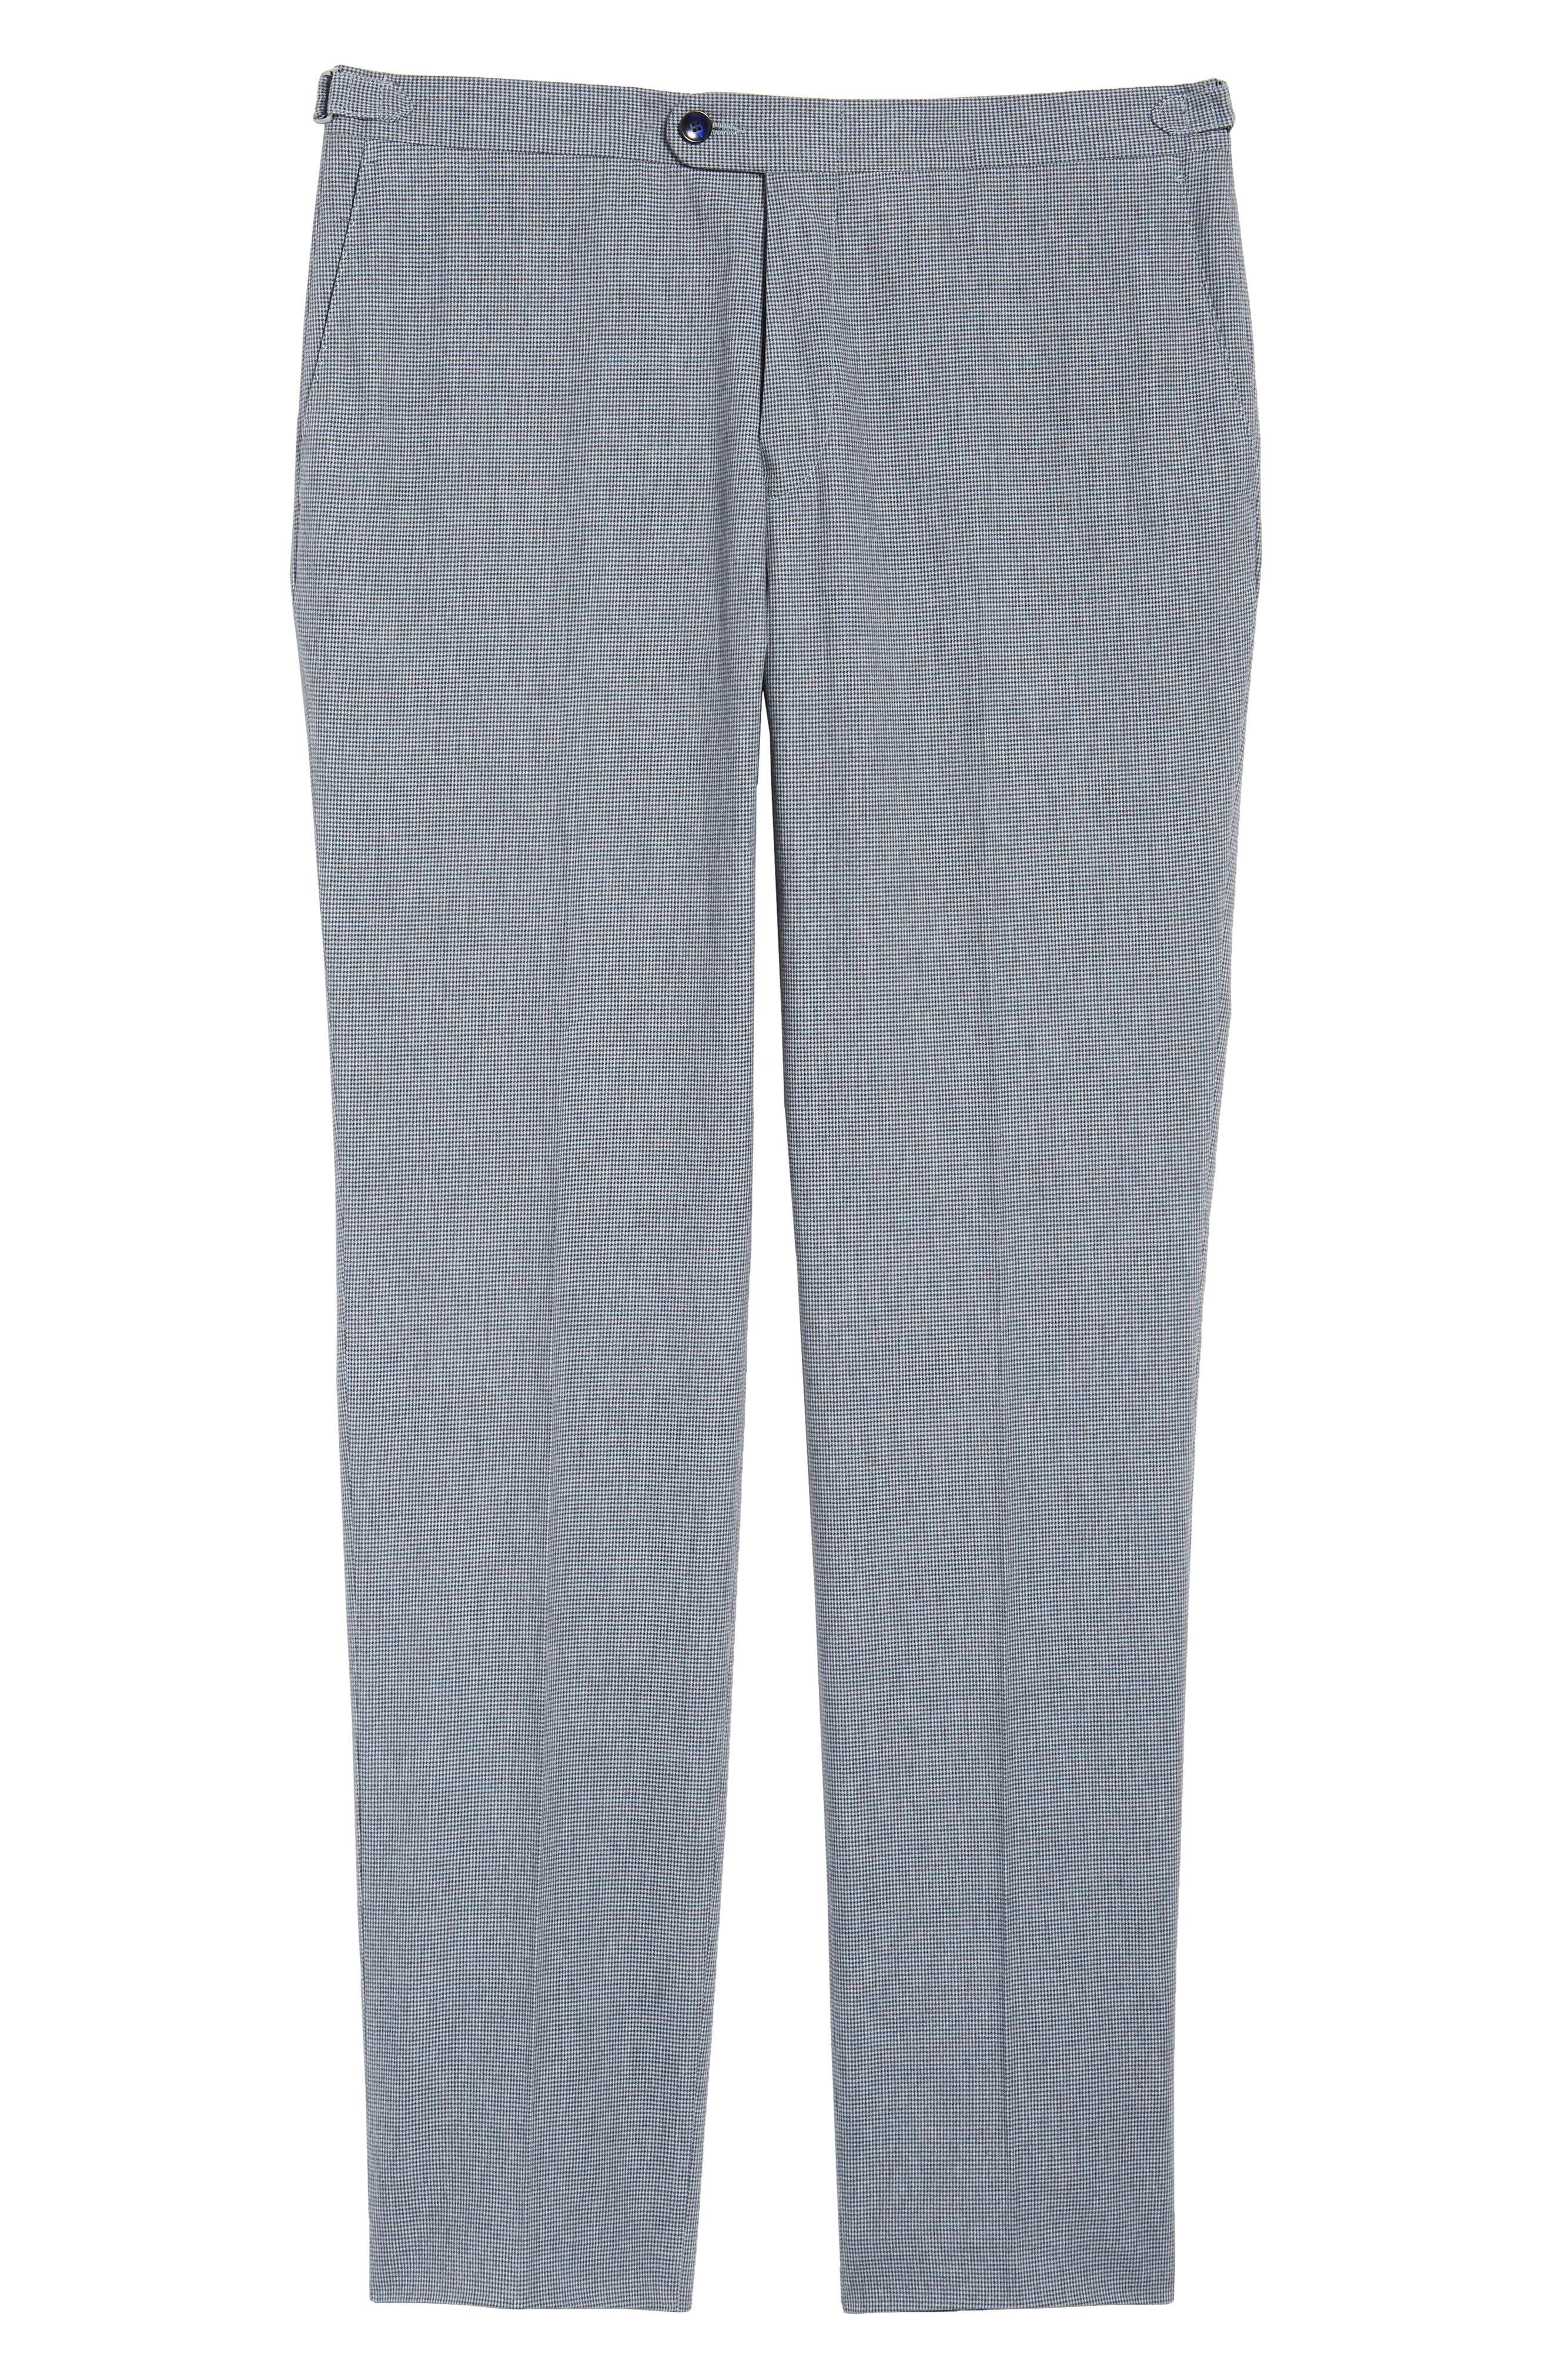 Flat Front Houndstooth Cotton Trousers,                             Alternate thumbnail 6, color,                             431